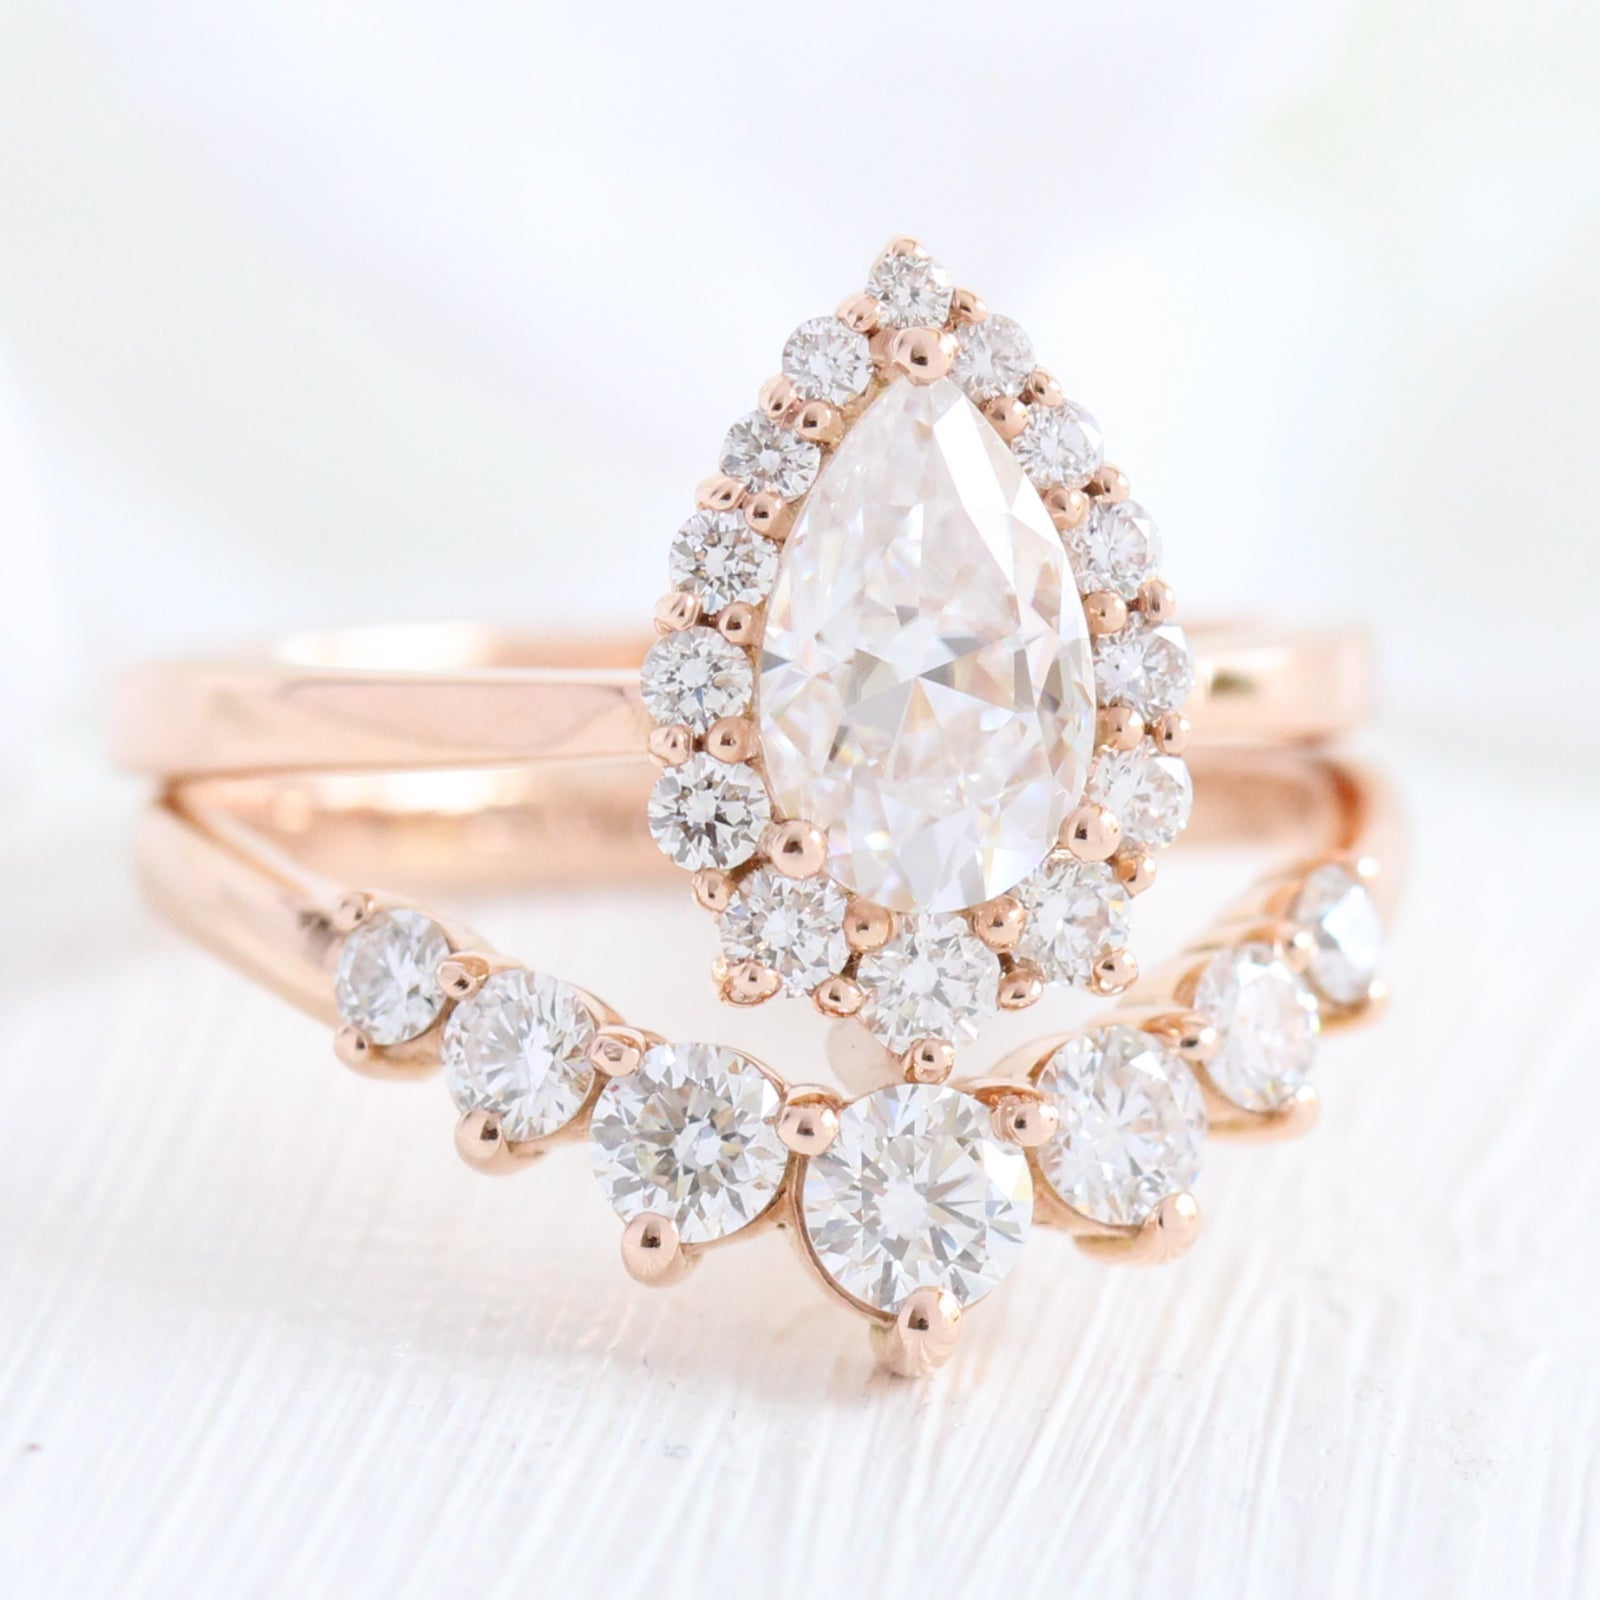 Details about  /14K Rose Gold Plated 1.9 Ctw Pear Cut Diamond Wedding Engagement Ring Bridal Set